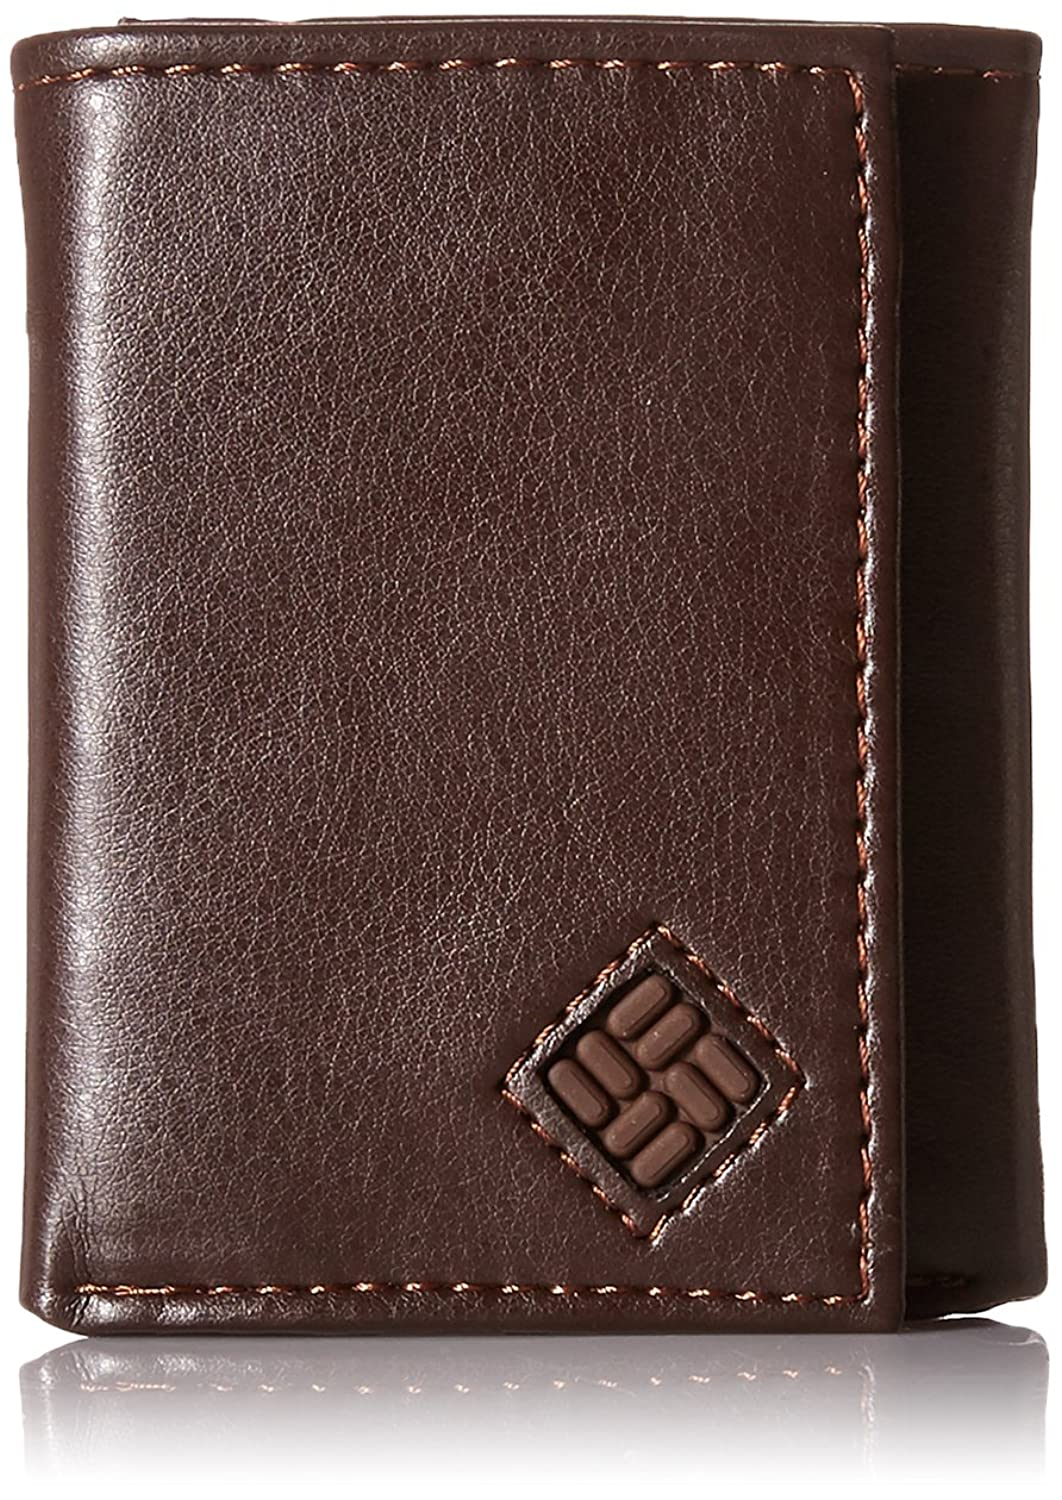 Columbia 31CO1169 Mens Trifold Wallet Image 1